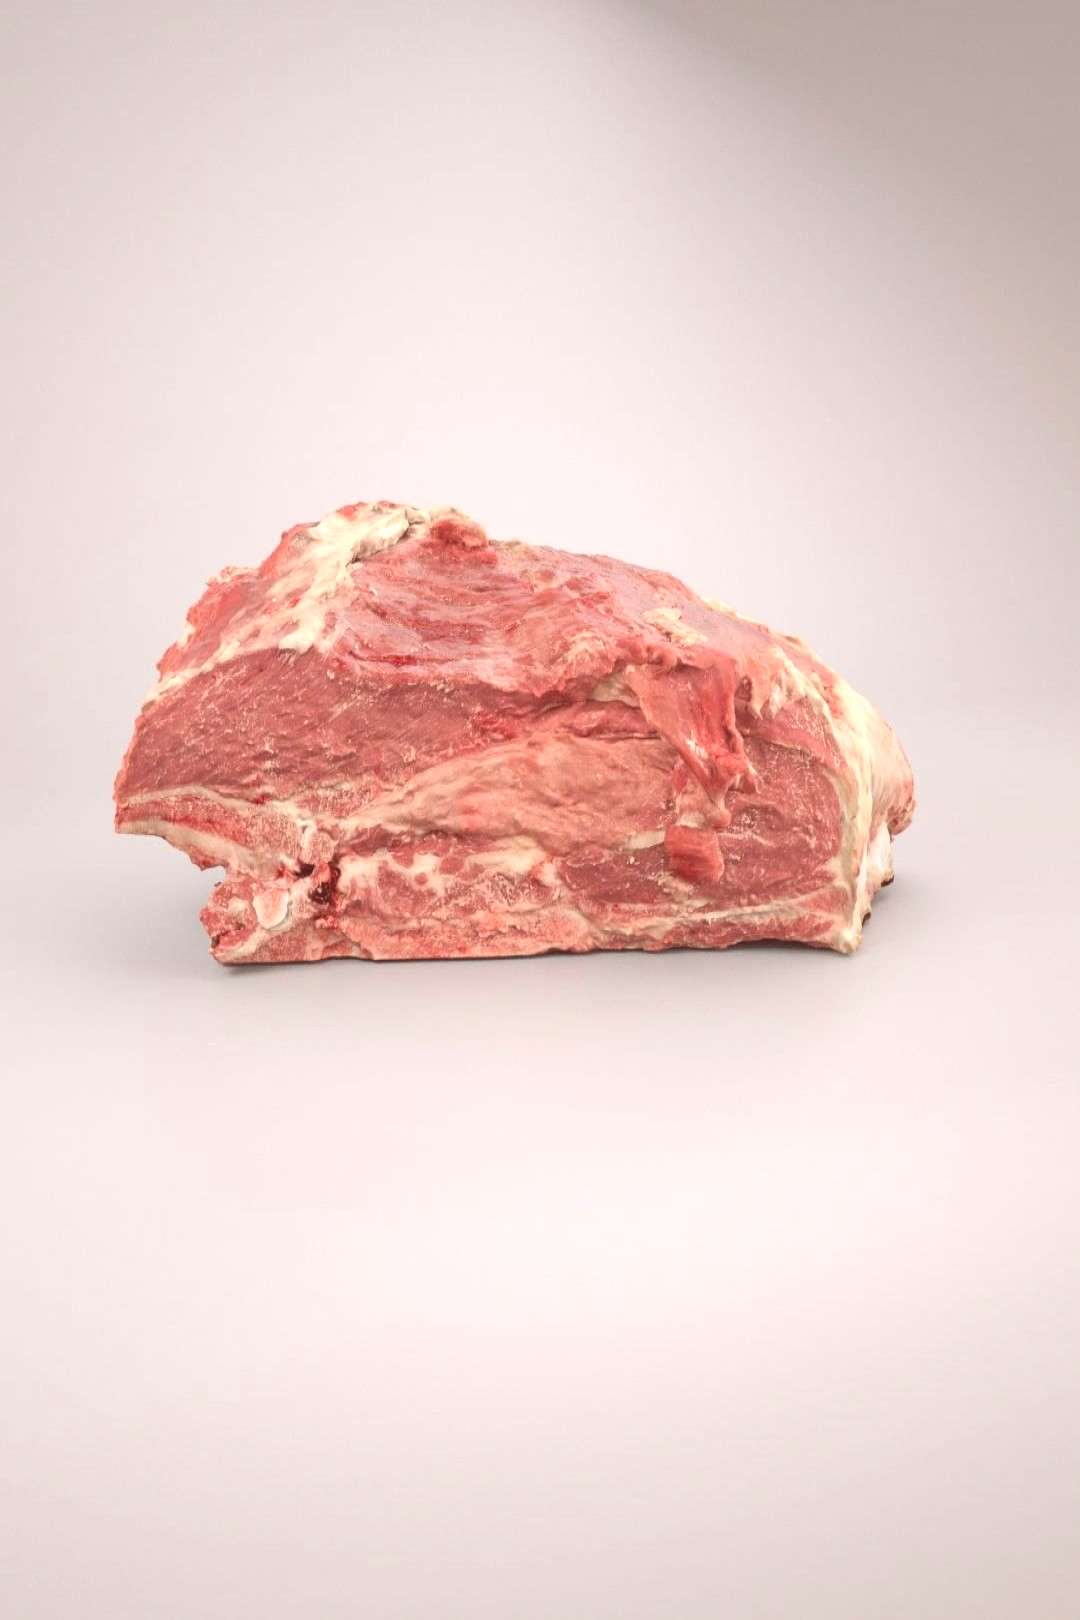 check out this high end photorealistic 3D model of Raw Pork Meat